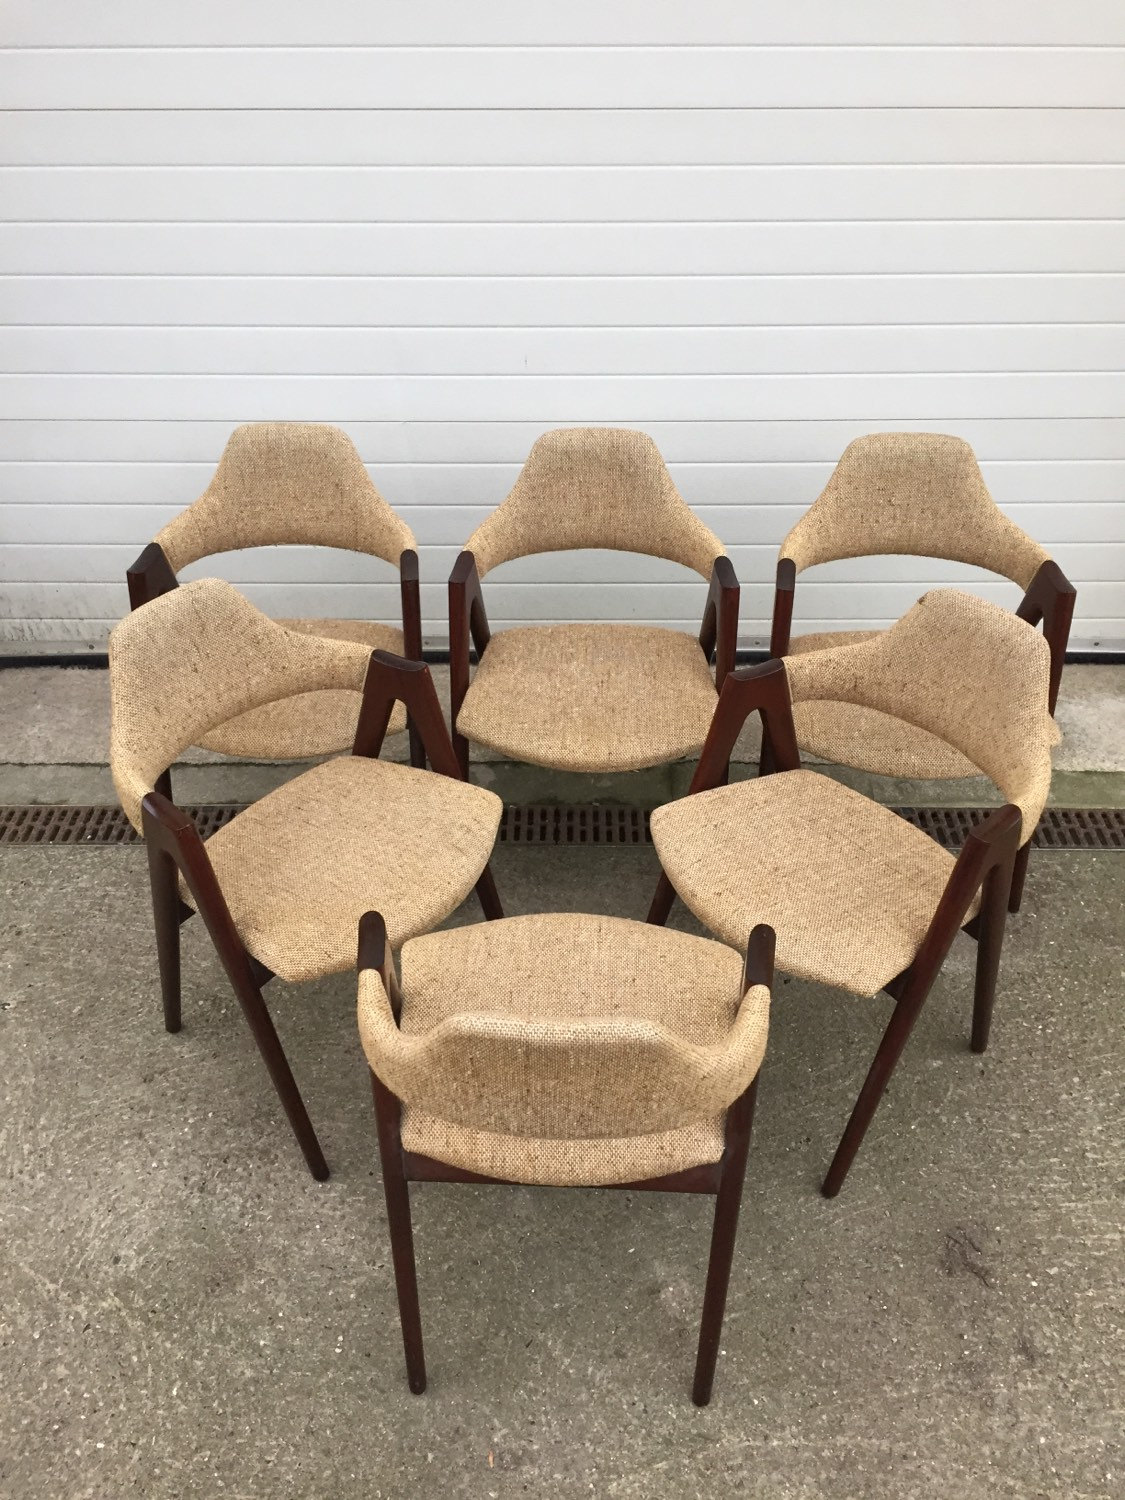 6 set compass wooden chair